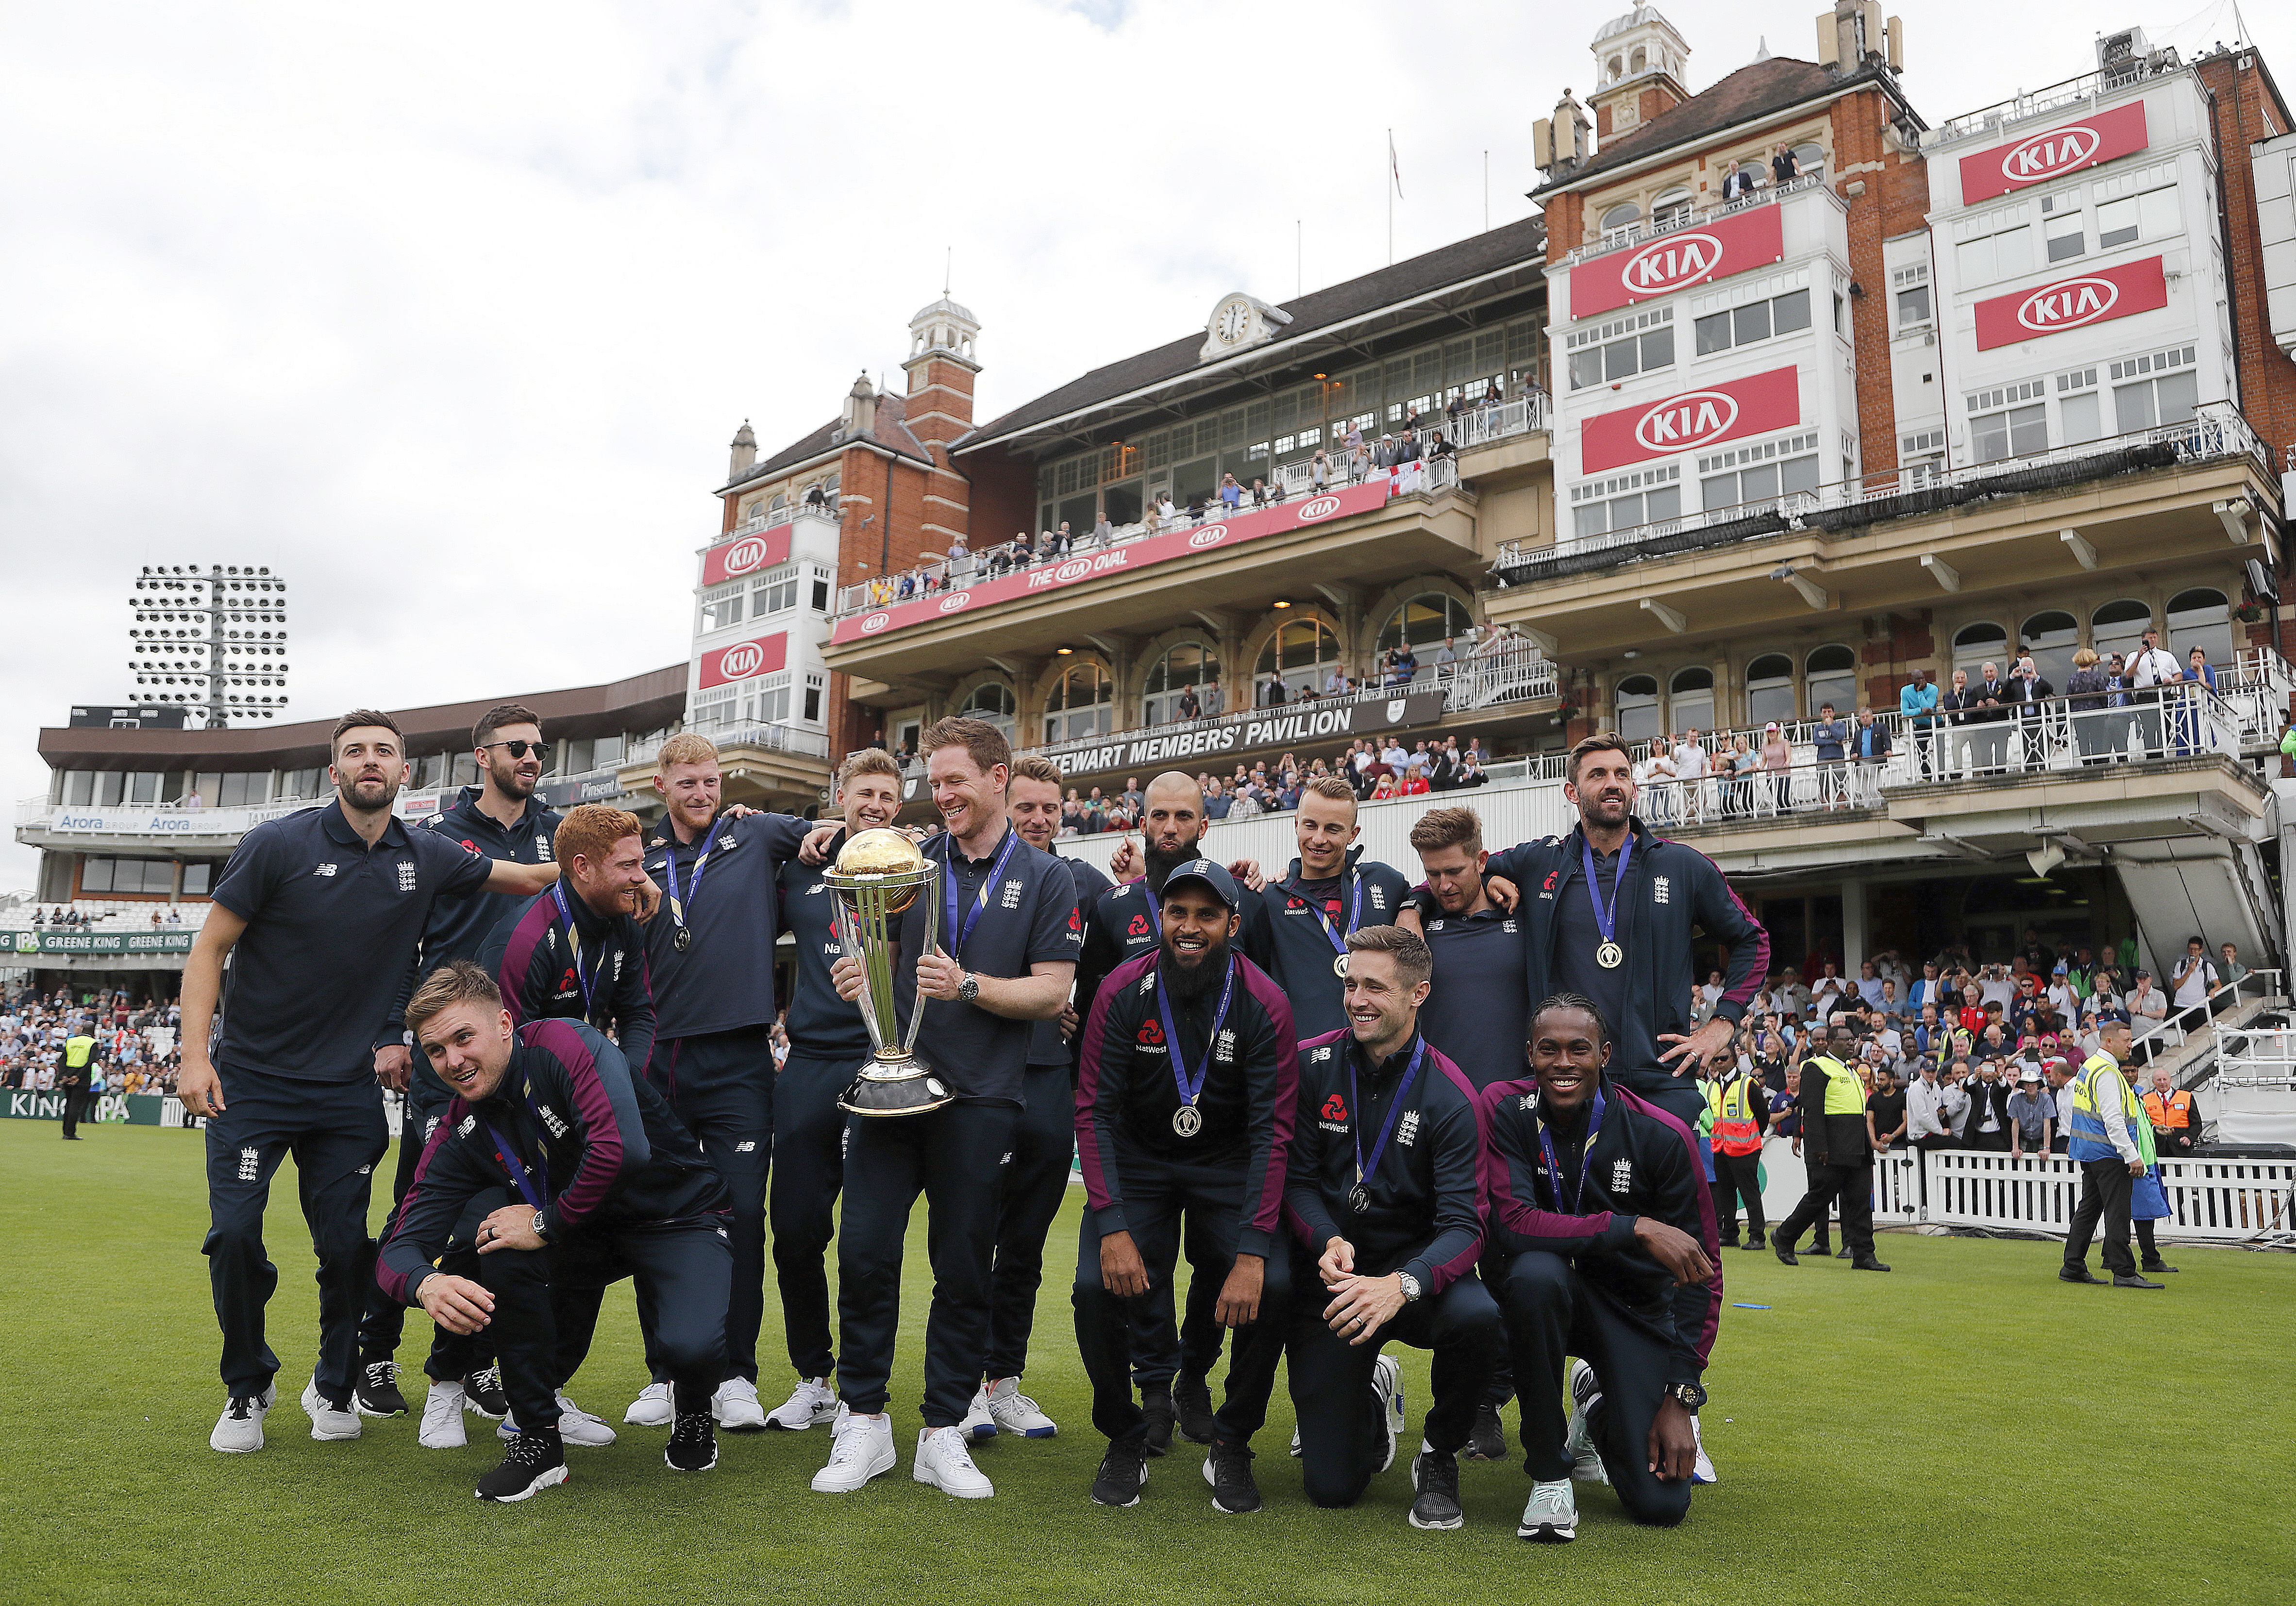 Eoin Morgan and his team celebrate at the Oval. Image: PA Images